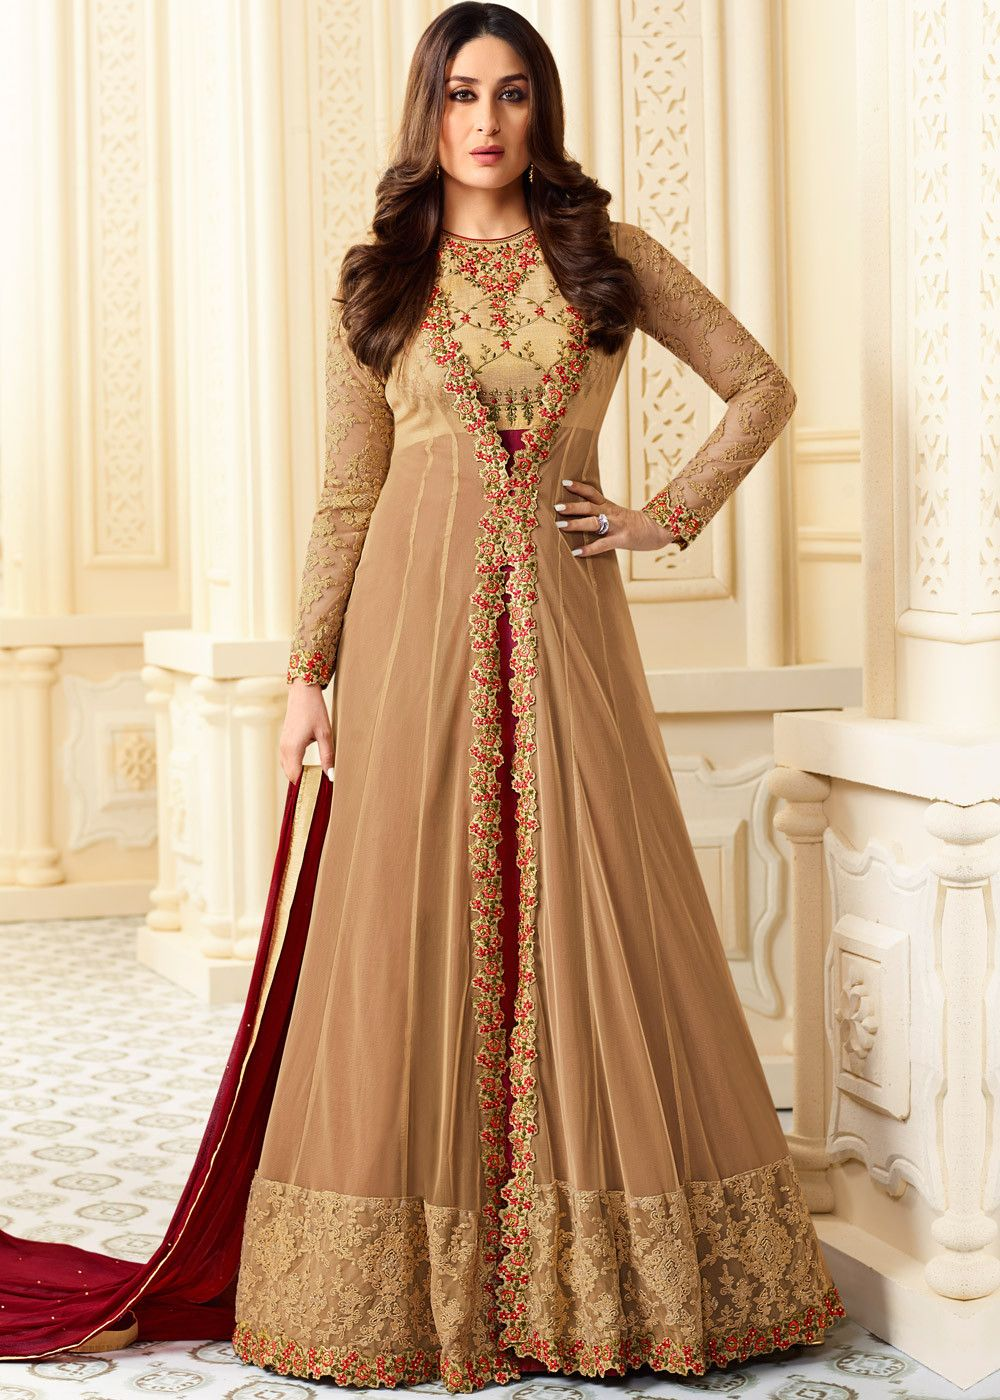 278153df68 #Beige and #maroon full length #anarkali #kameez topped by a #beige net  #jacket embellished with #resham and zari #embroidery.